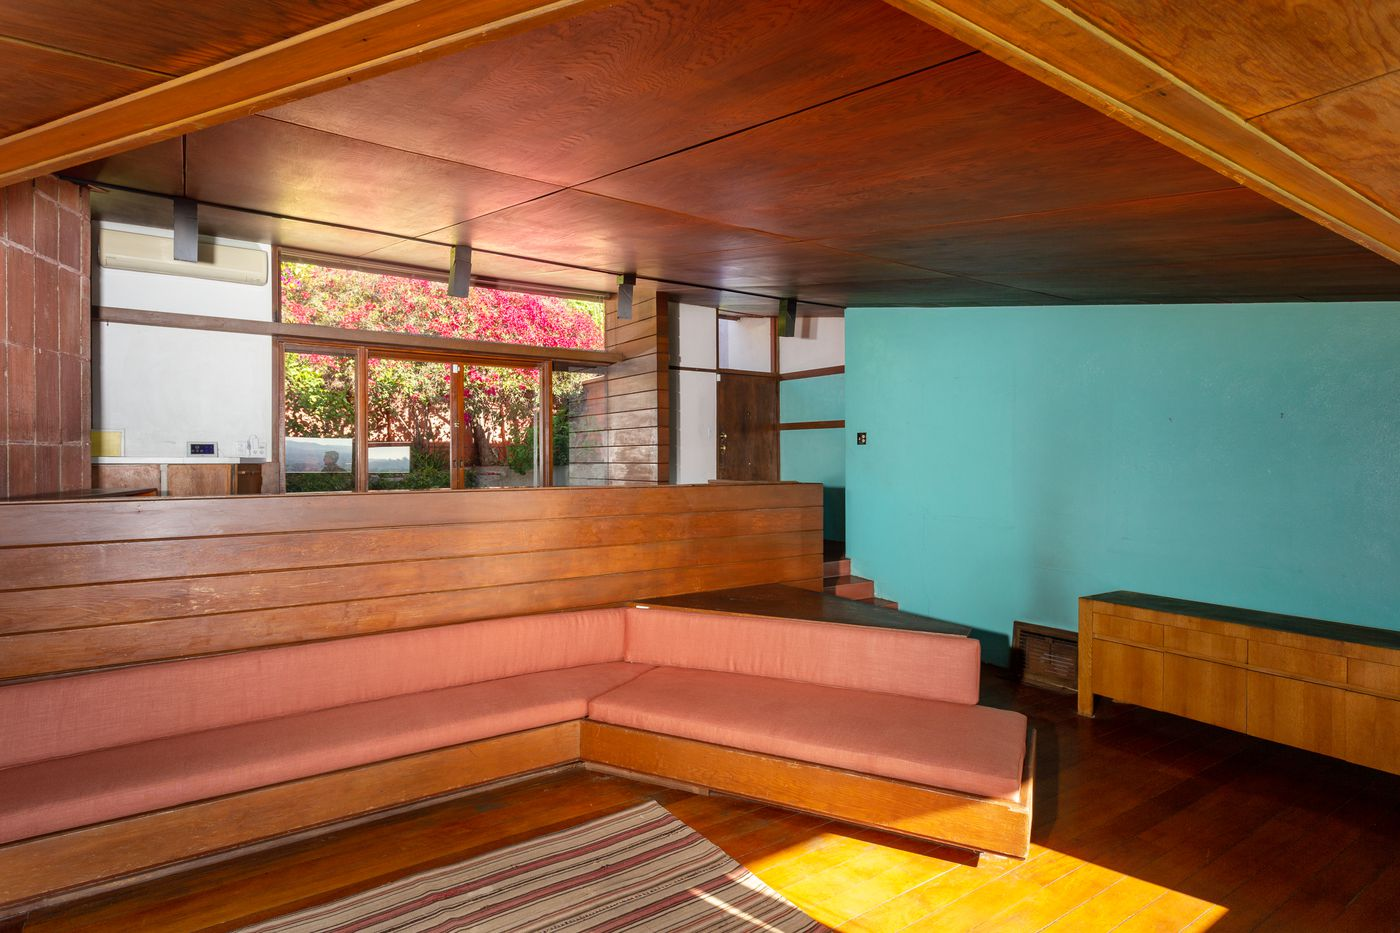 John Lautner's former Silver Lake home on the market for $1.6M ...